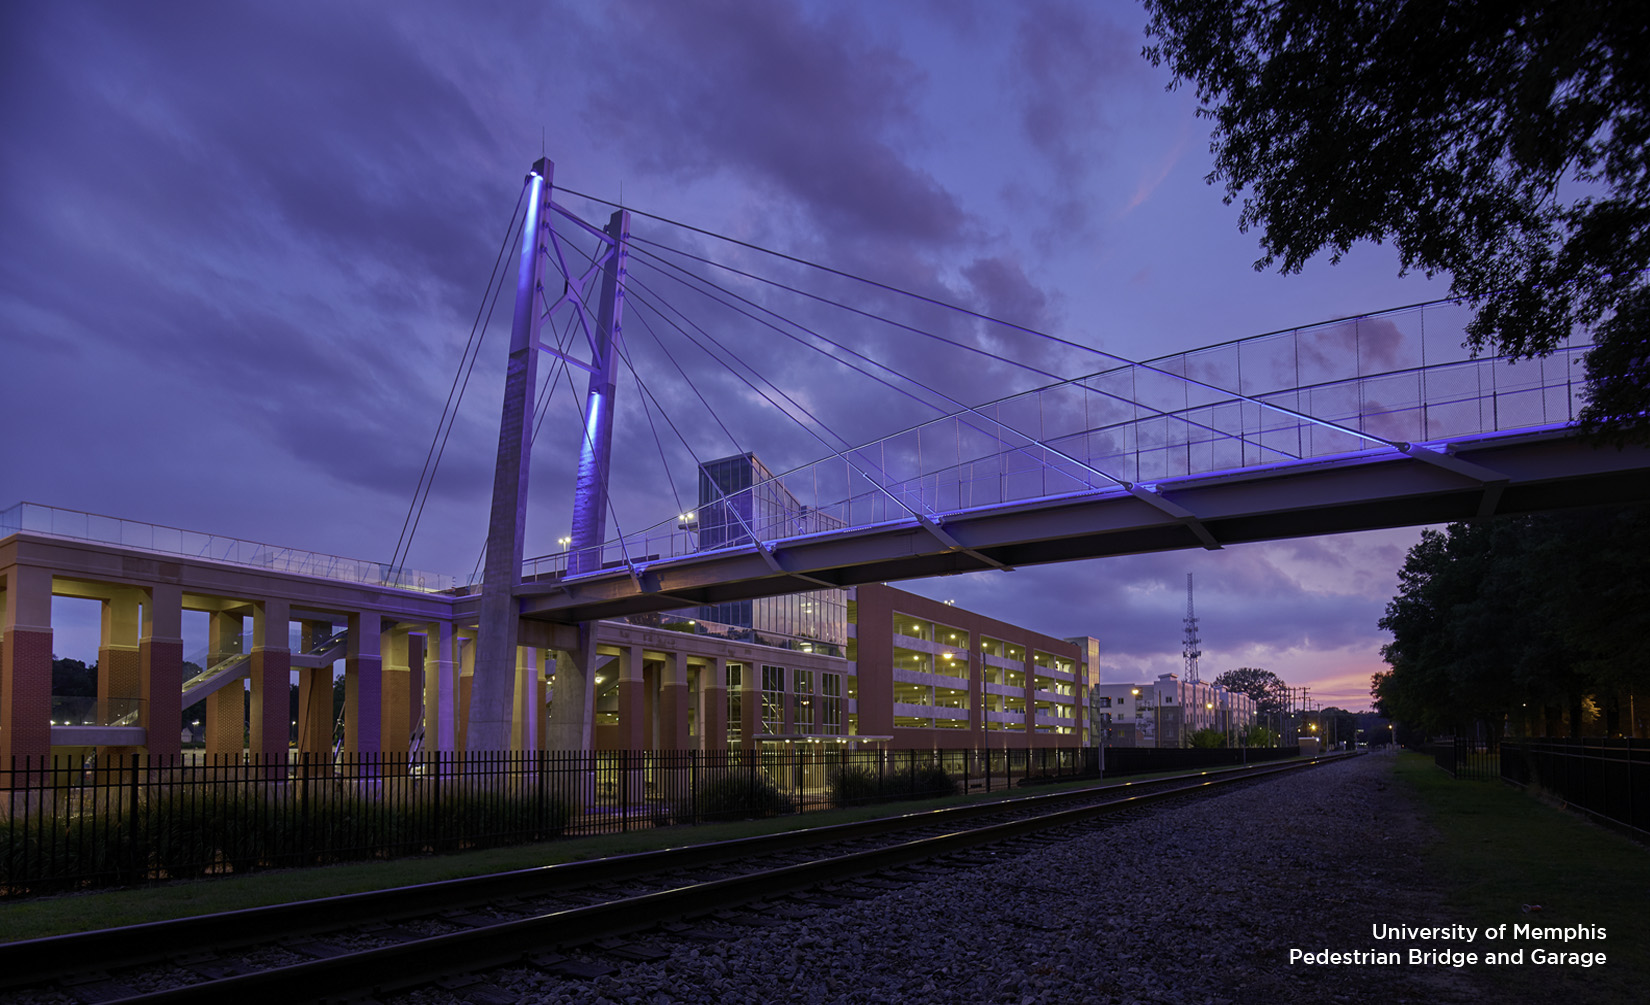 University of Memphis Pedestrian Bridge